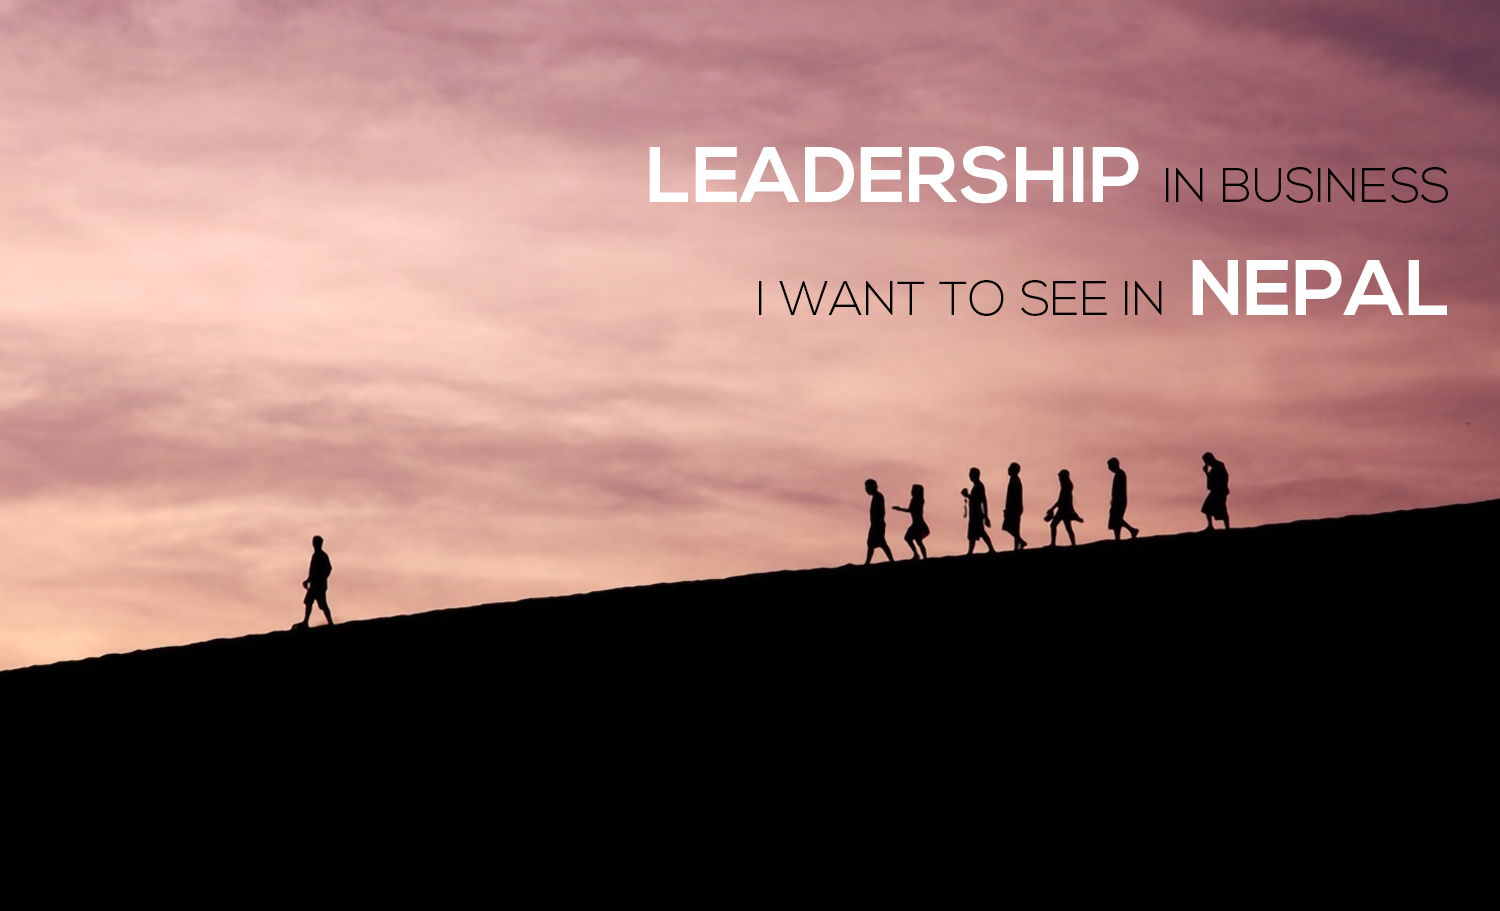 Leadership in business I want to see in Nepal